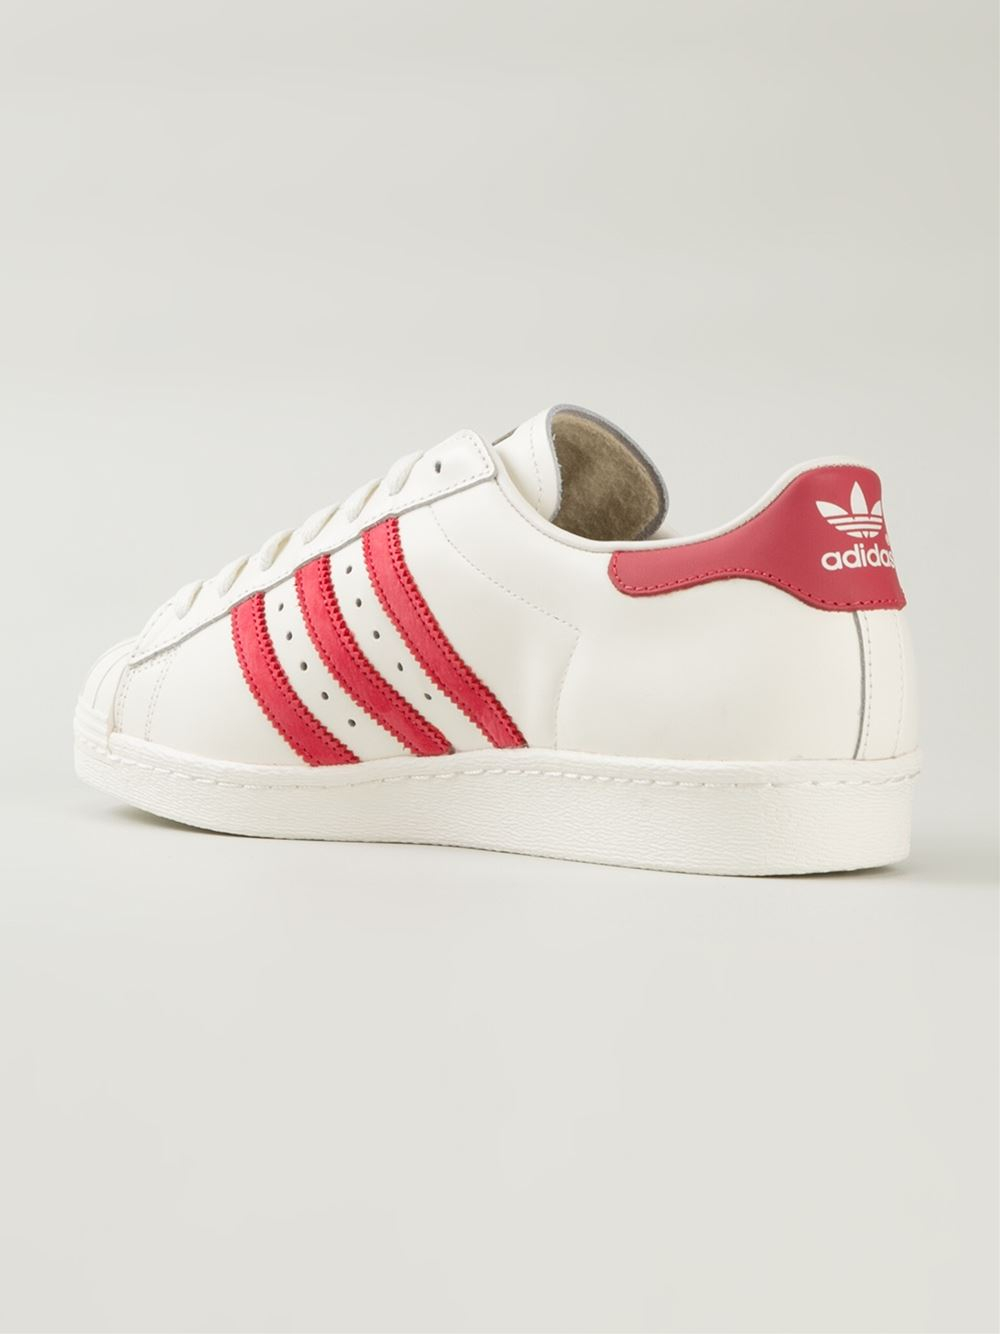 Adidas Original Superstar Womens